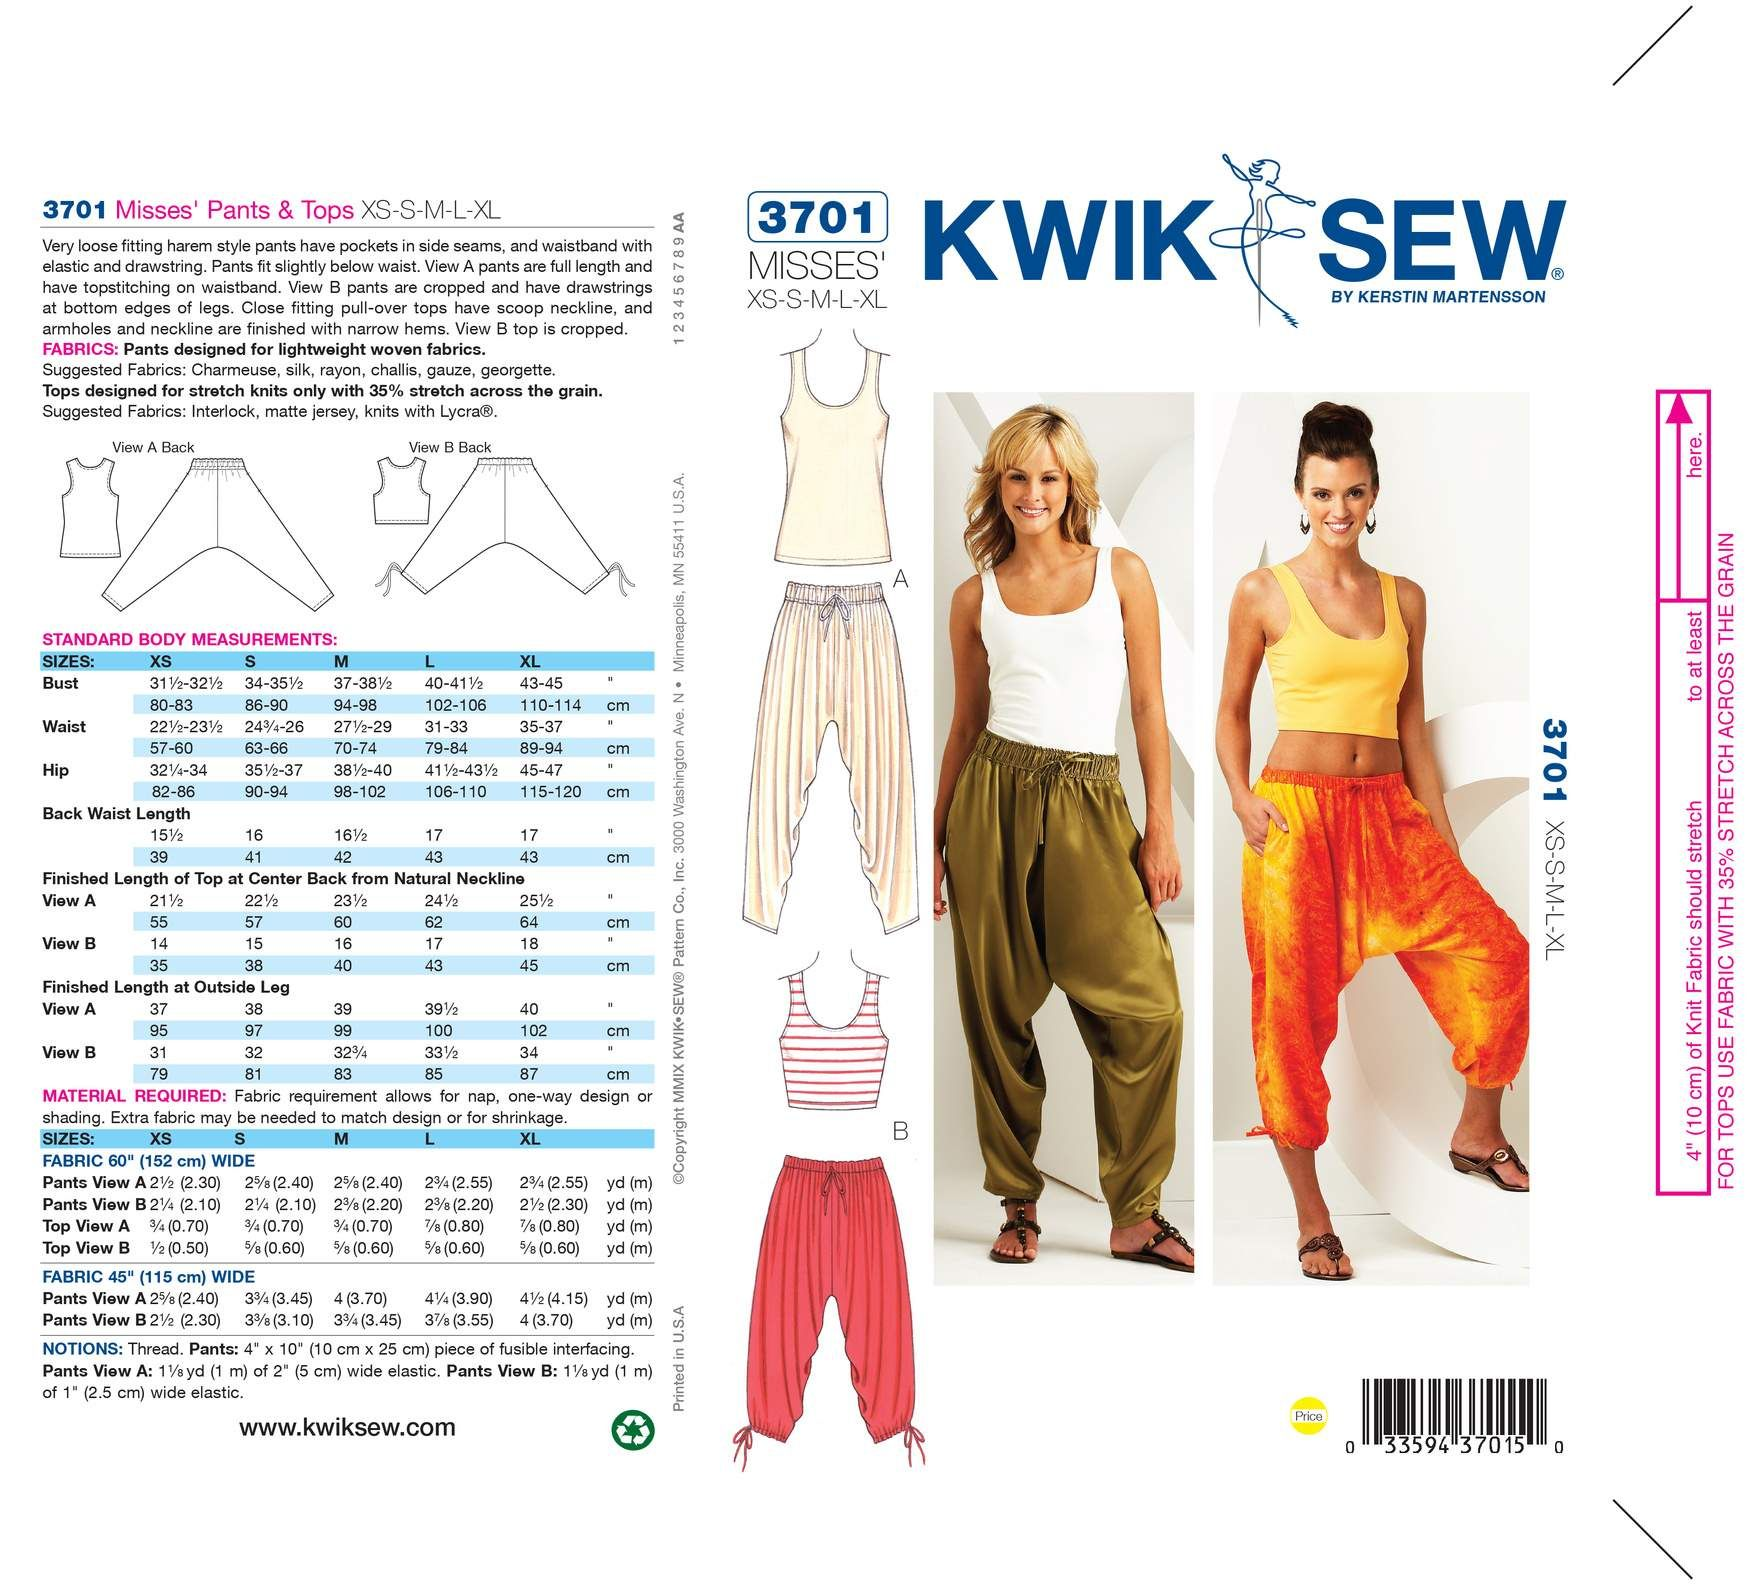 Mccall Pattern K3701 Xs-S-M-L-X-Kwik Sew Pattern | Sewing Patterns ...